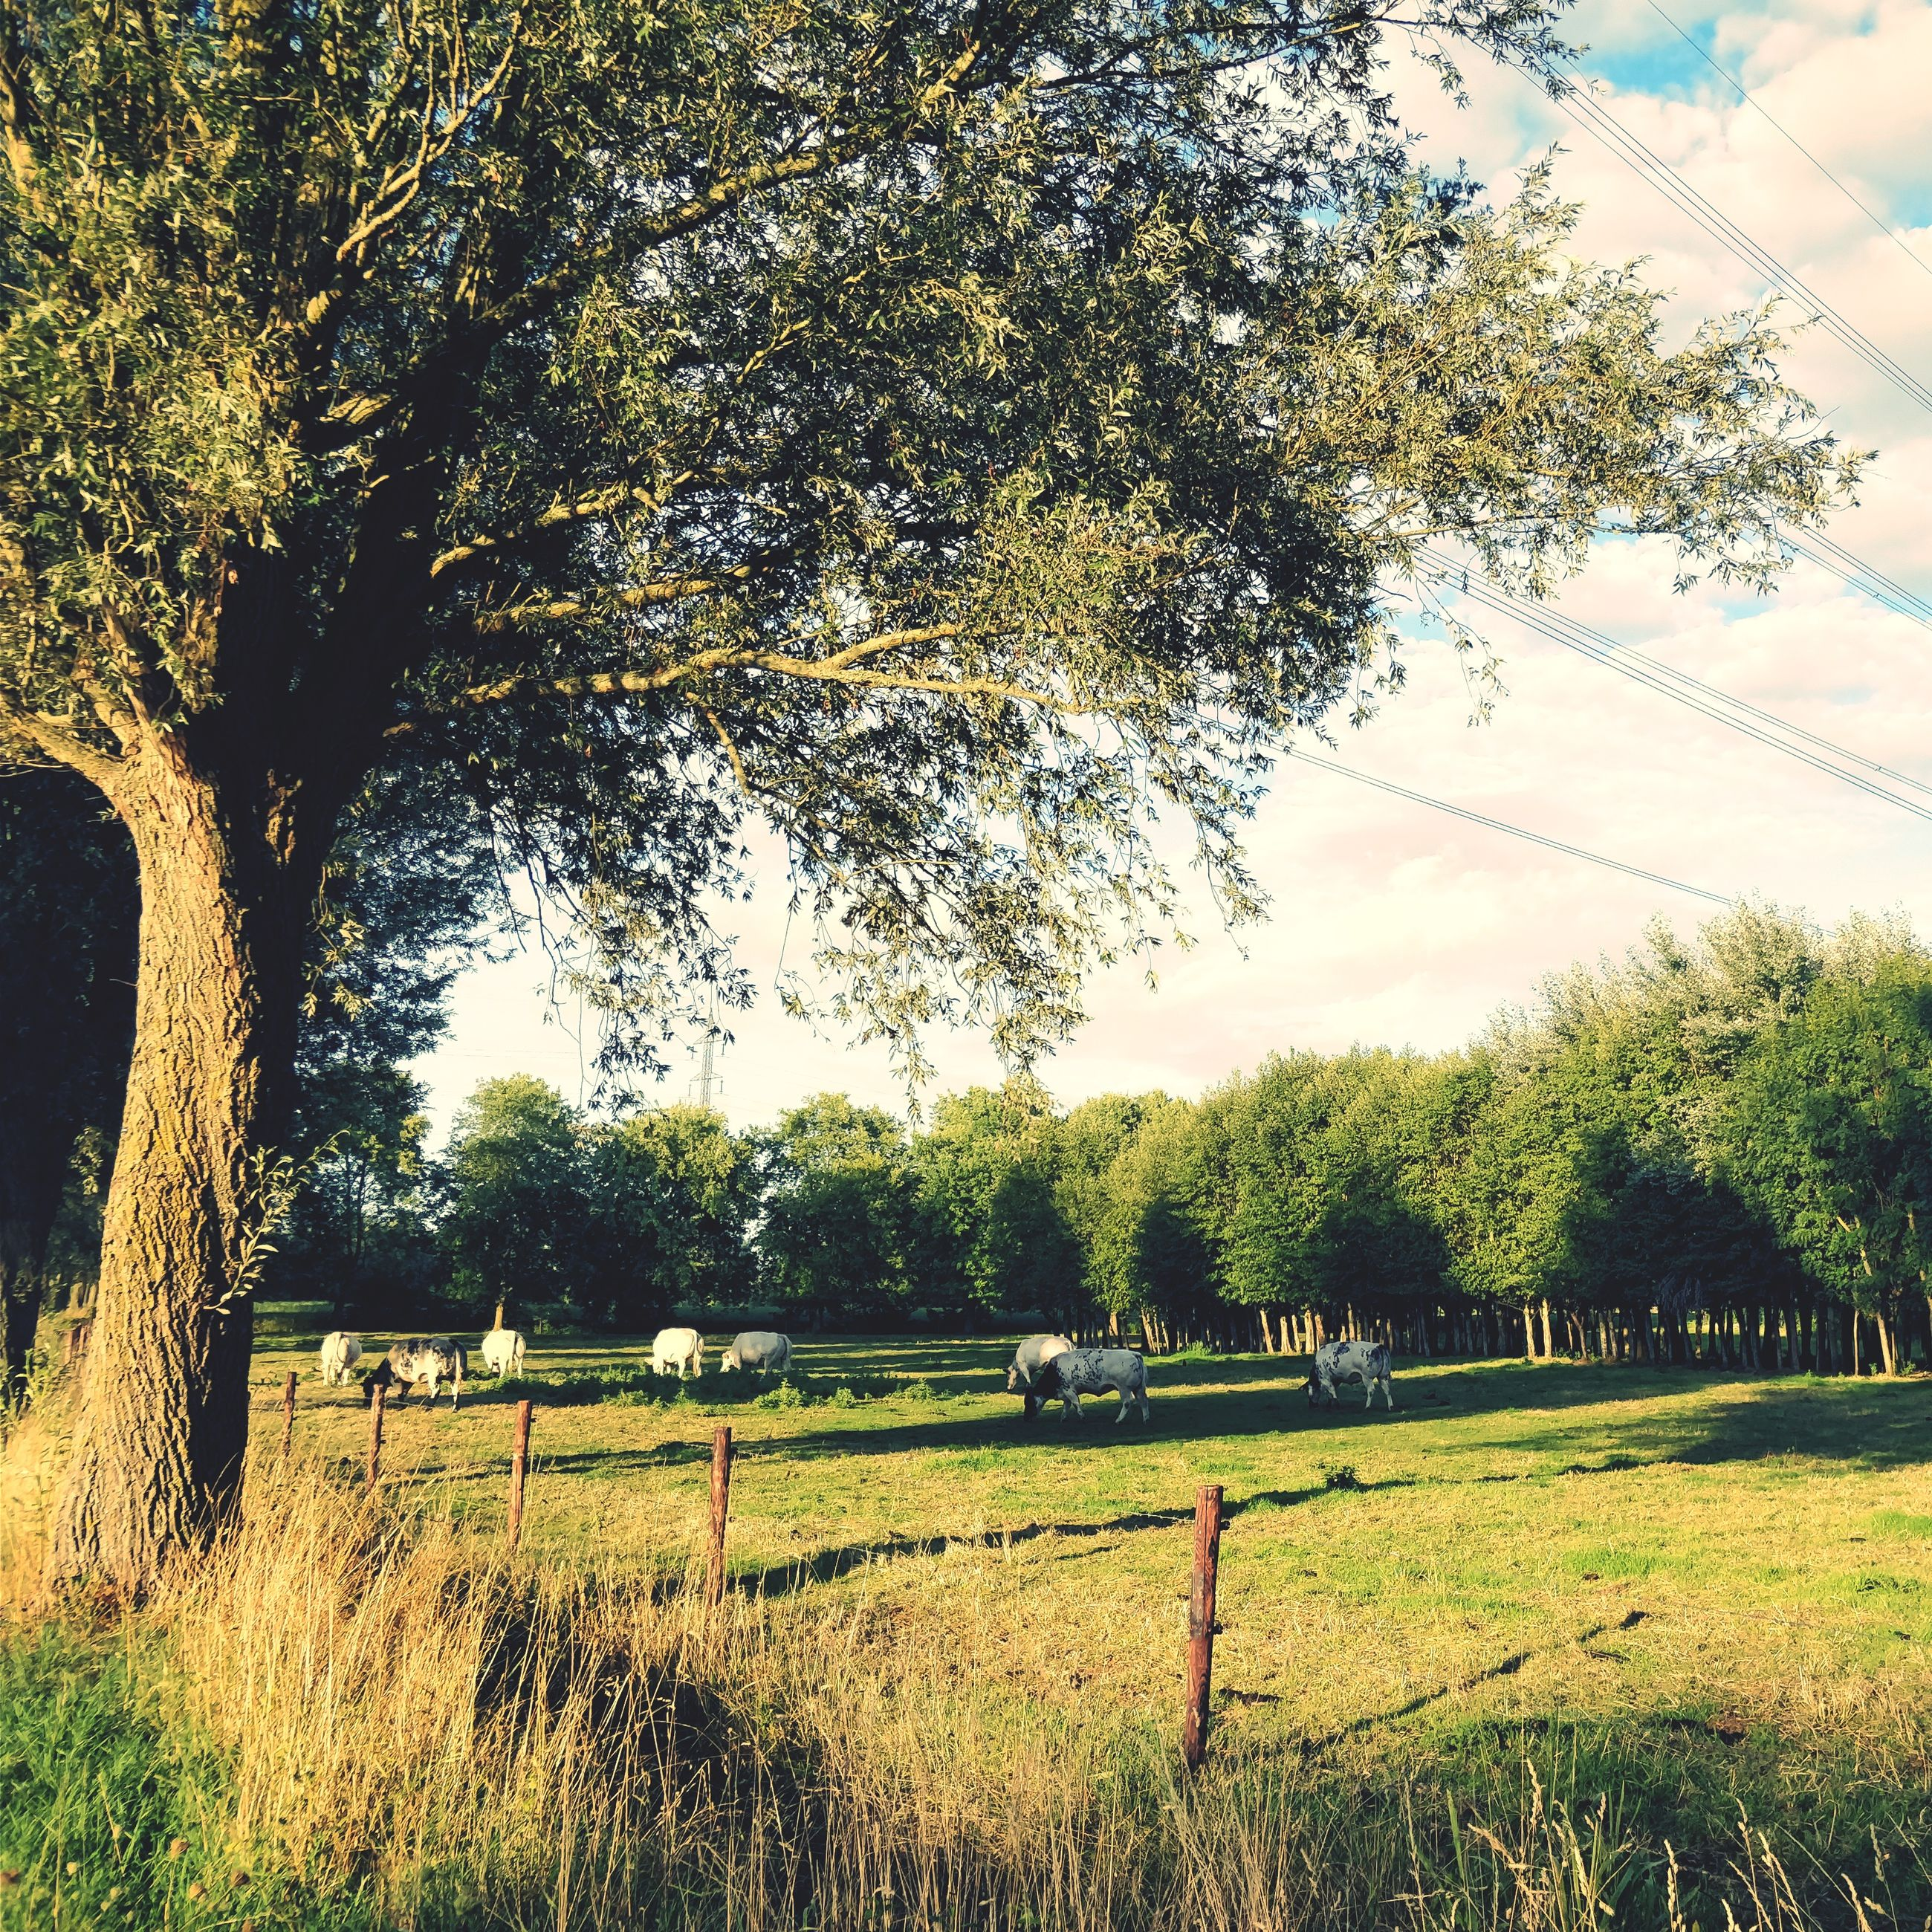 tree, grass, field, growth, nature, landscape, beauty in nature, tranquility, agriculture, tranquil scene, scenics, day, rural scene, no people, green color, outdoors, tree trunk, sky, branch